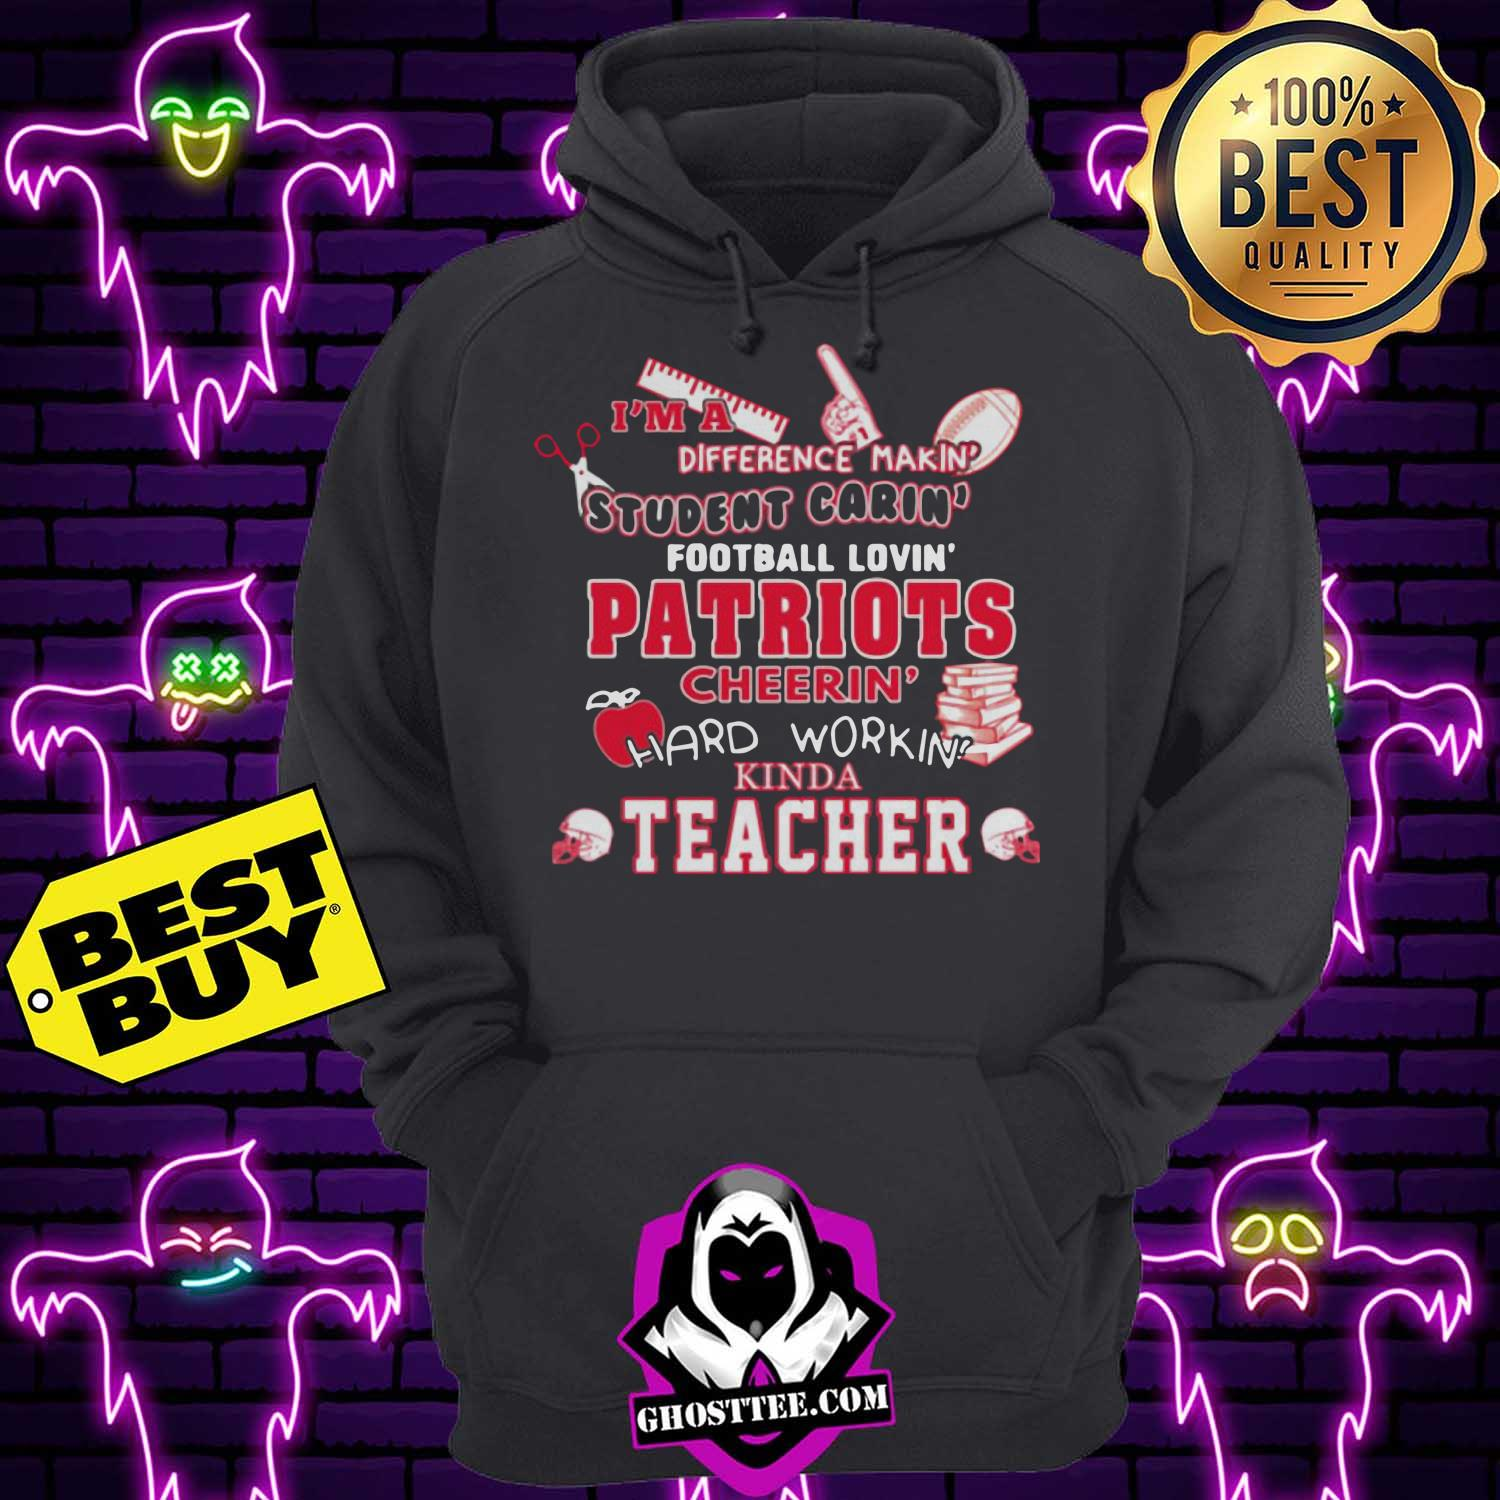 tennessee titans nfl im a difference making student caring football loving kinda teacher youth hoodie 1 - Tennessee Titans NFL I'm A Difference Making Student Caring Football Loving Kinda Teacher Youth shirt